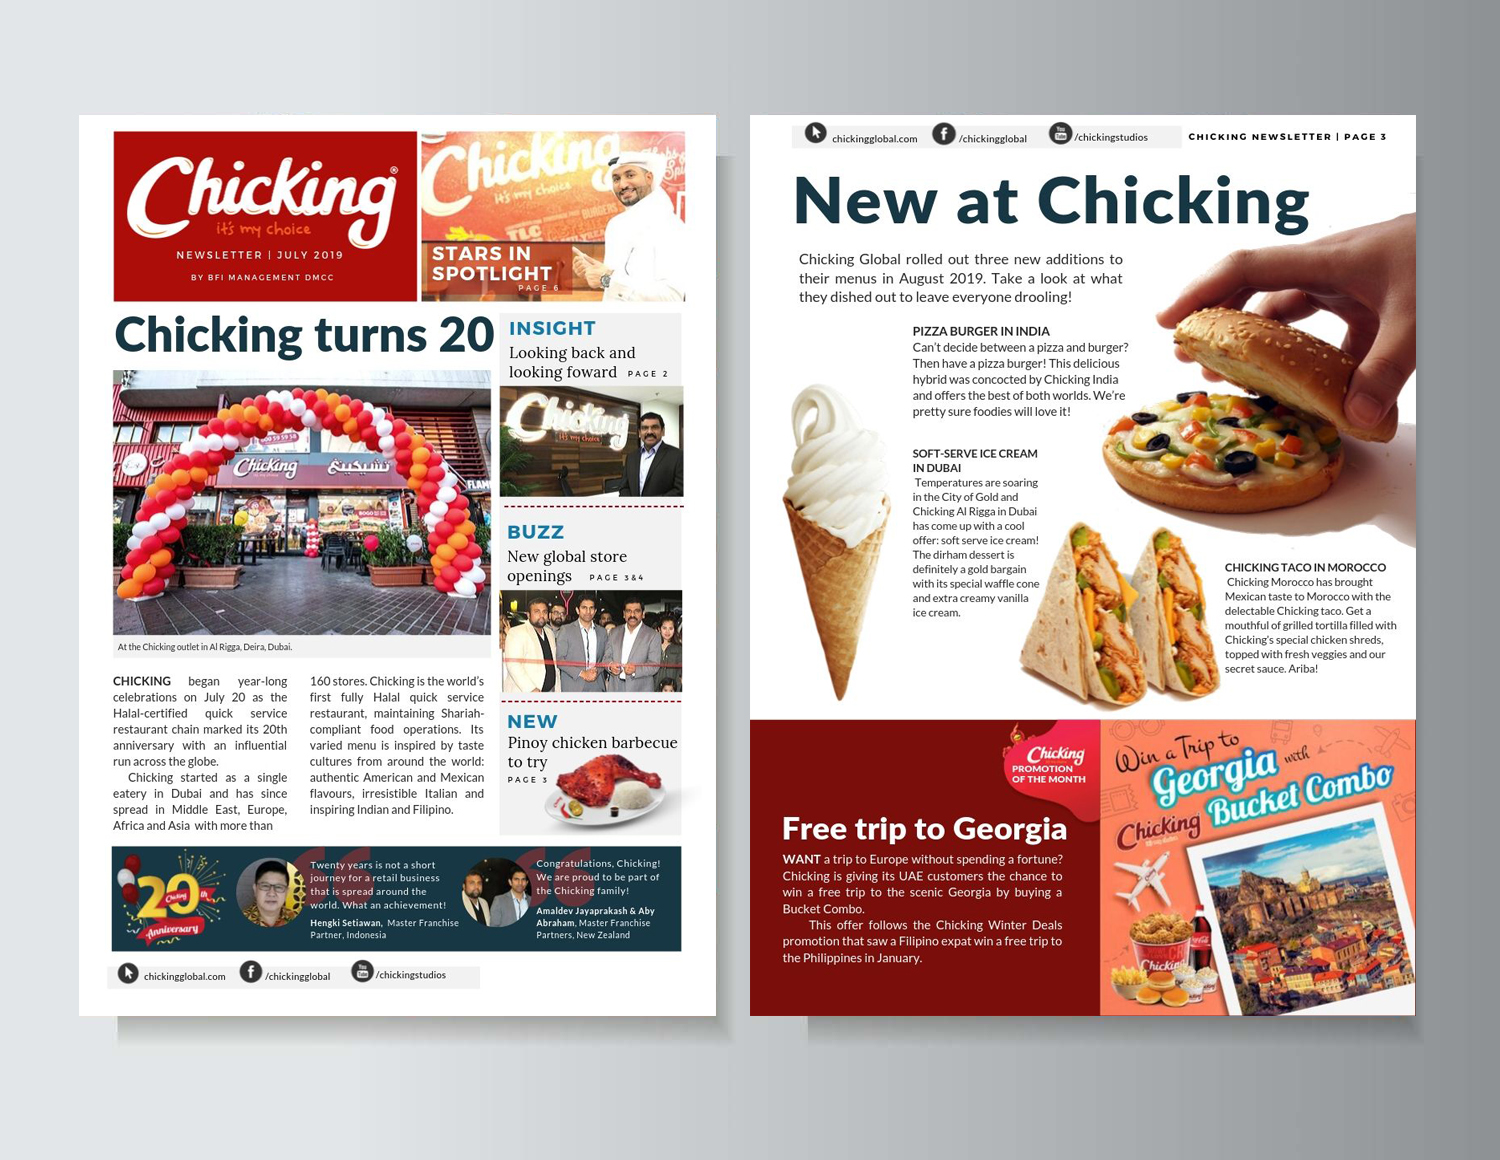 chicking newsletter photo 2